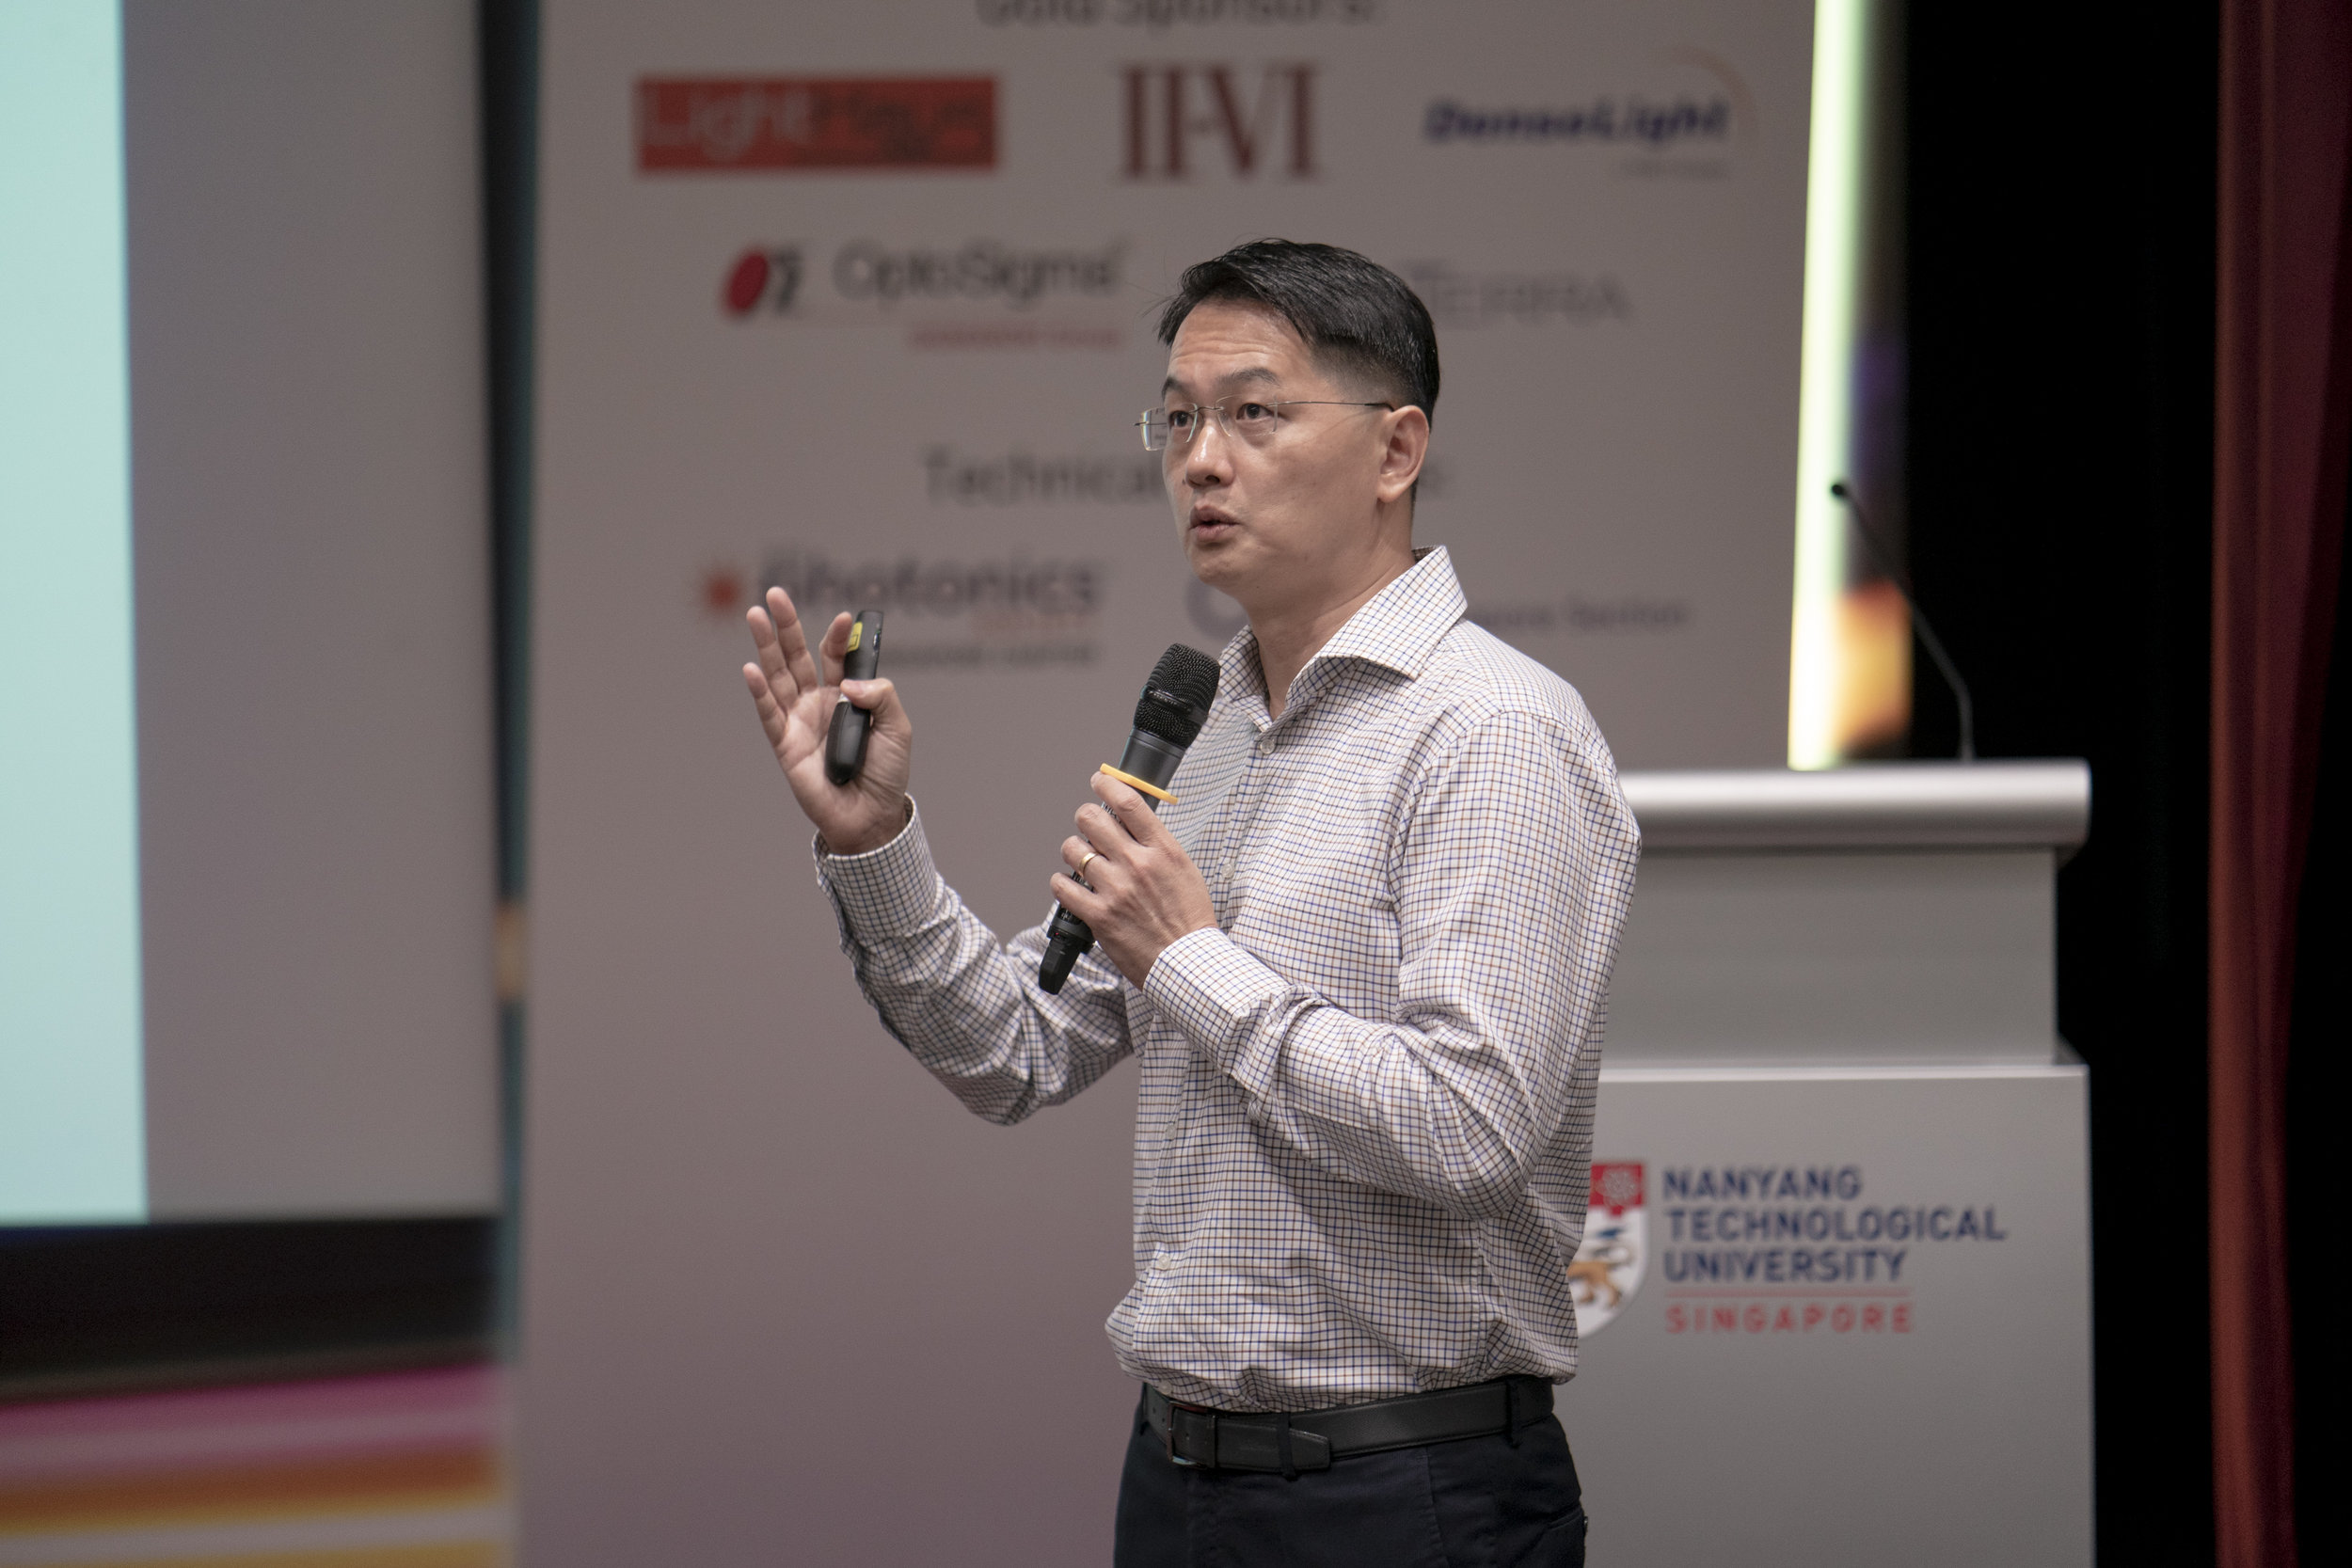 TPI Photonics SG 2018 Conference n Exhibition 0250rc.jpg